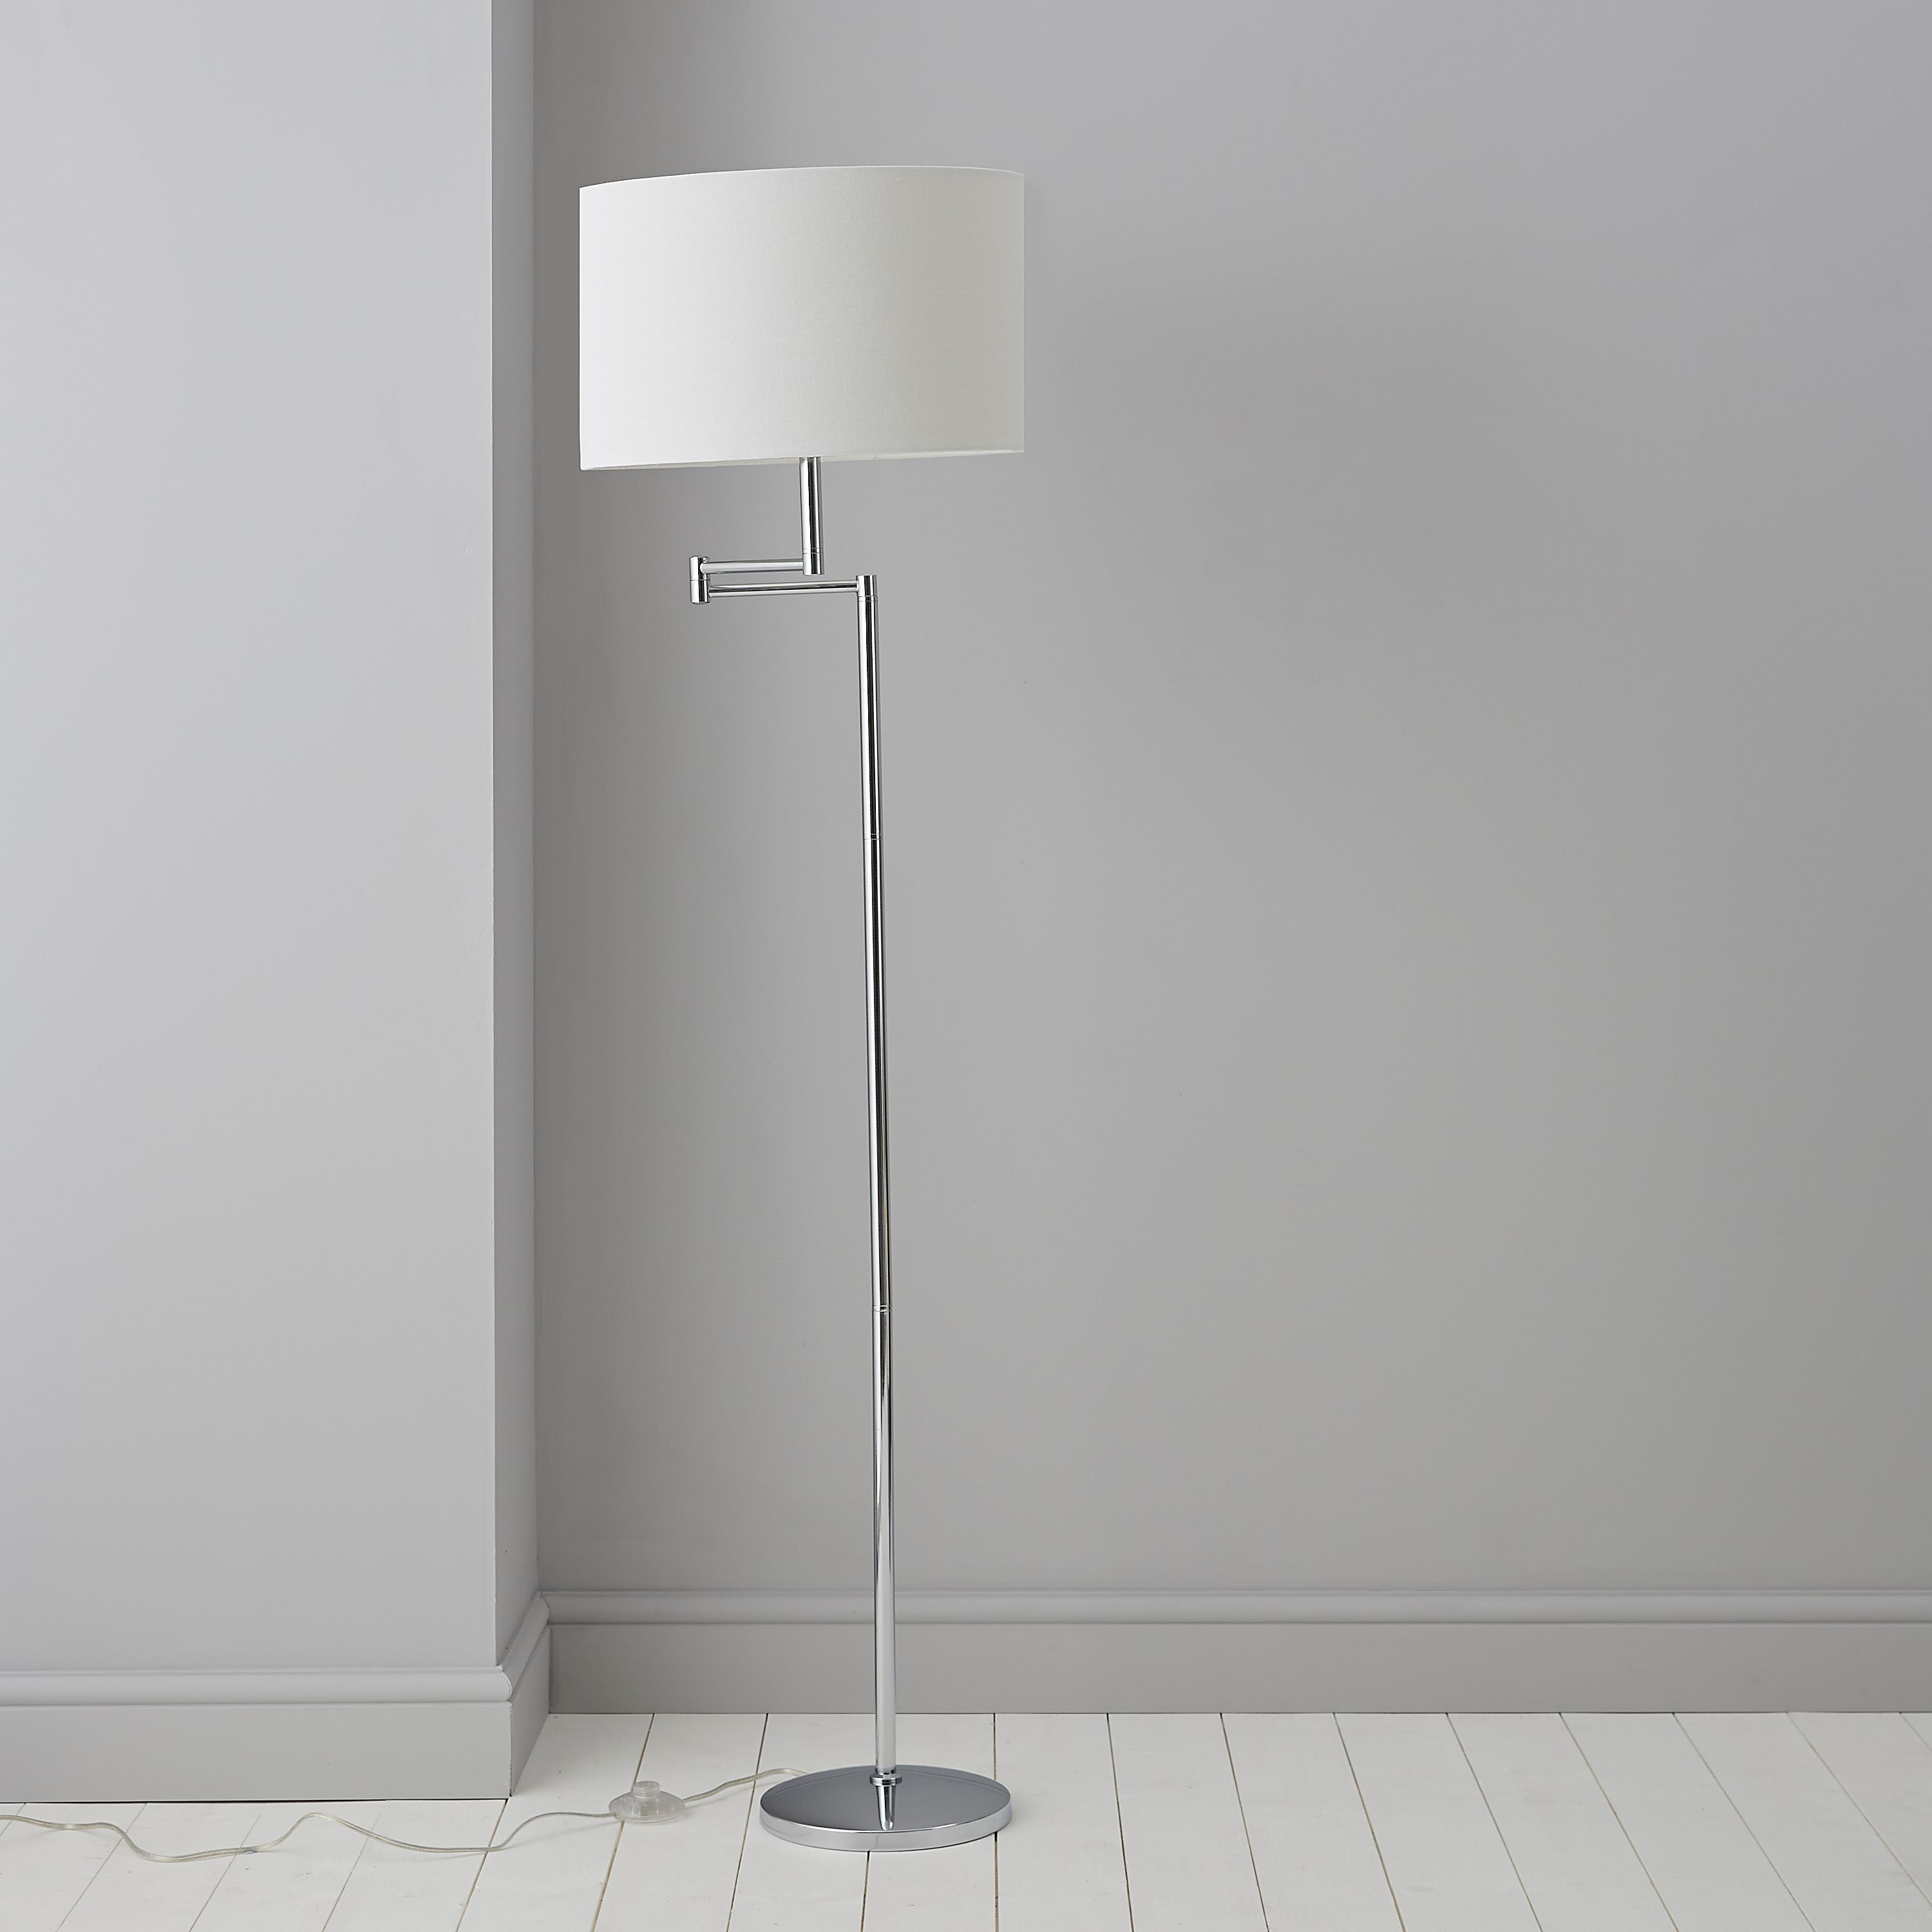 Einthoven Swing Arm Chrome Effect Floor Lamp | Floor lamp, Chrome ...